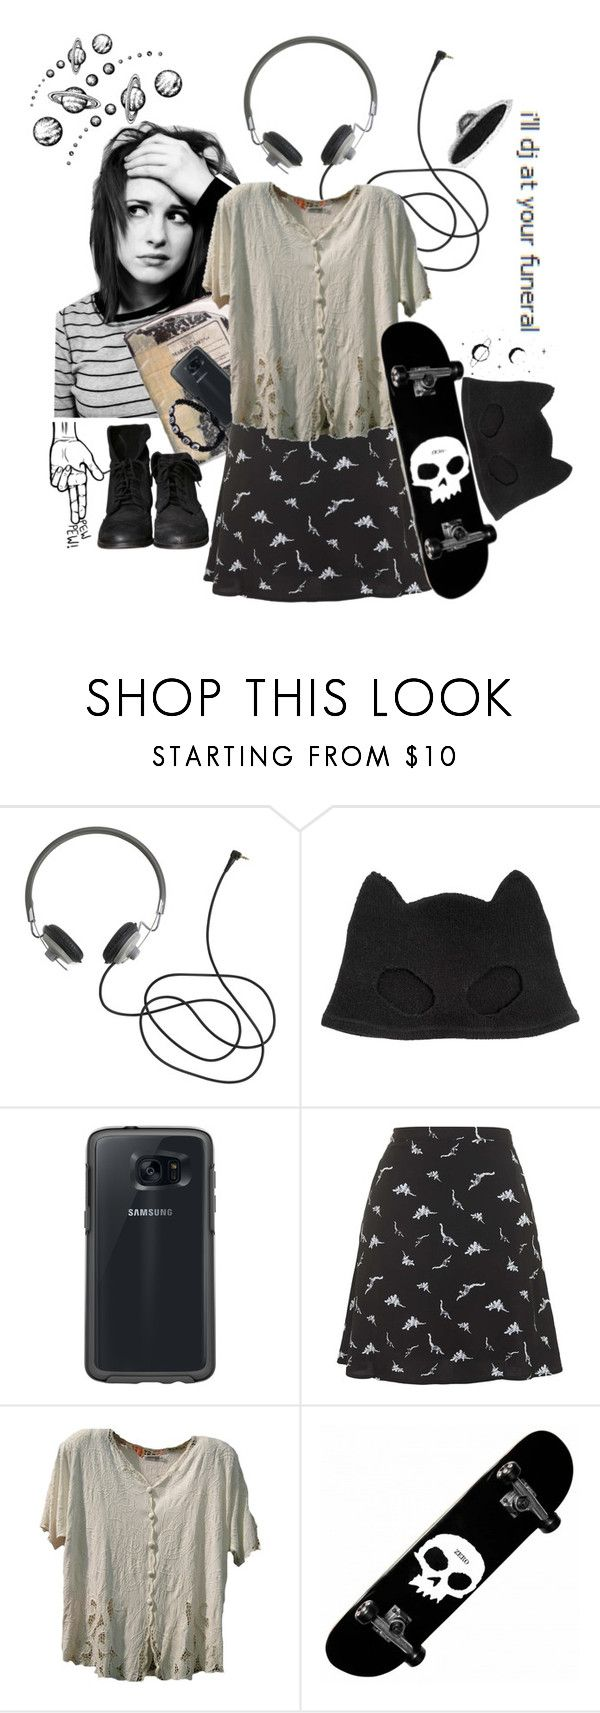 """""""°°••""""I'll dj at your funeral.""""••°°"""" by psycho-avatar ❤ liked on Polyvore featuring Silver Spoon Attire, Plane, OtterBox, Topshop, Zara and Theory"""